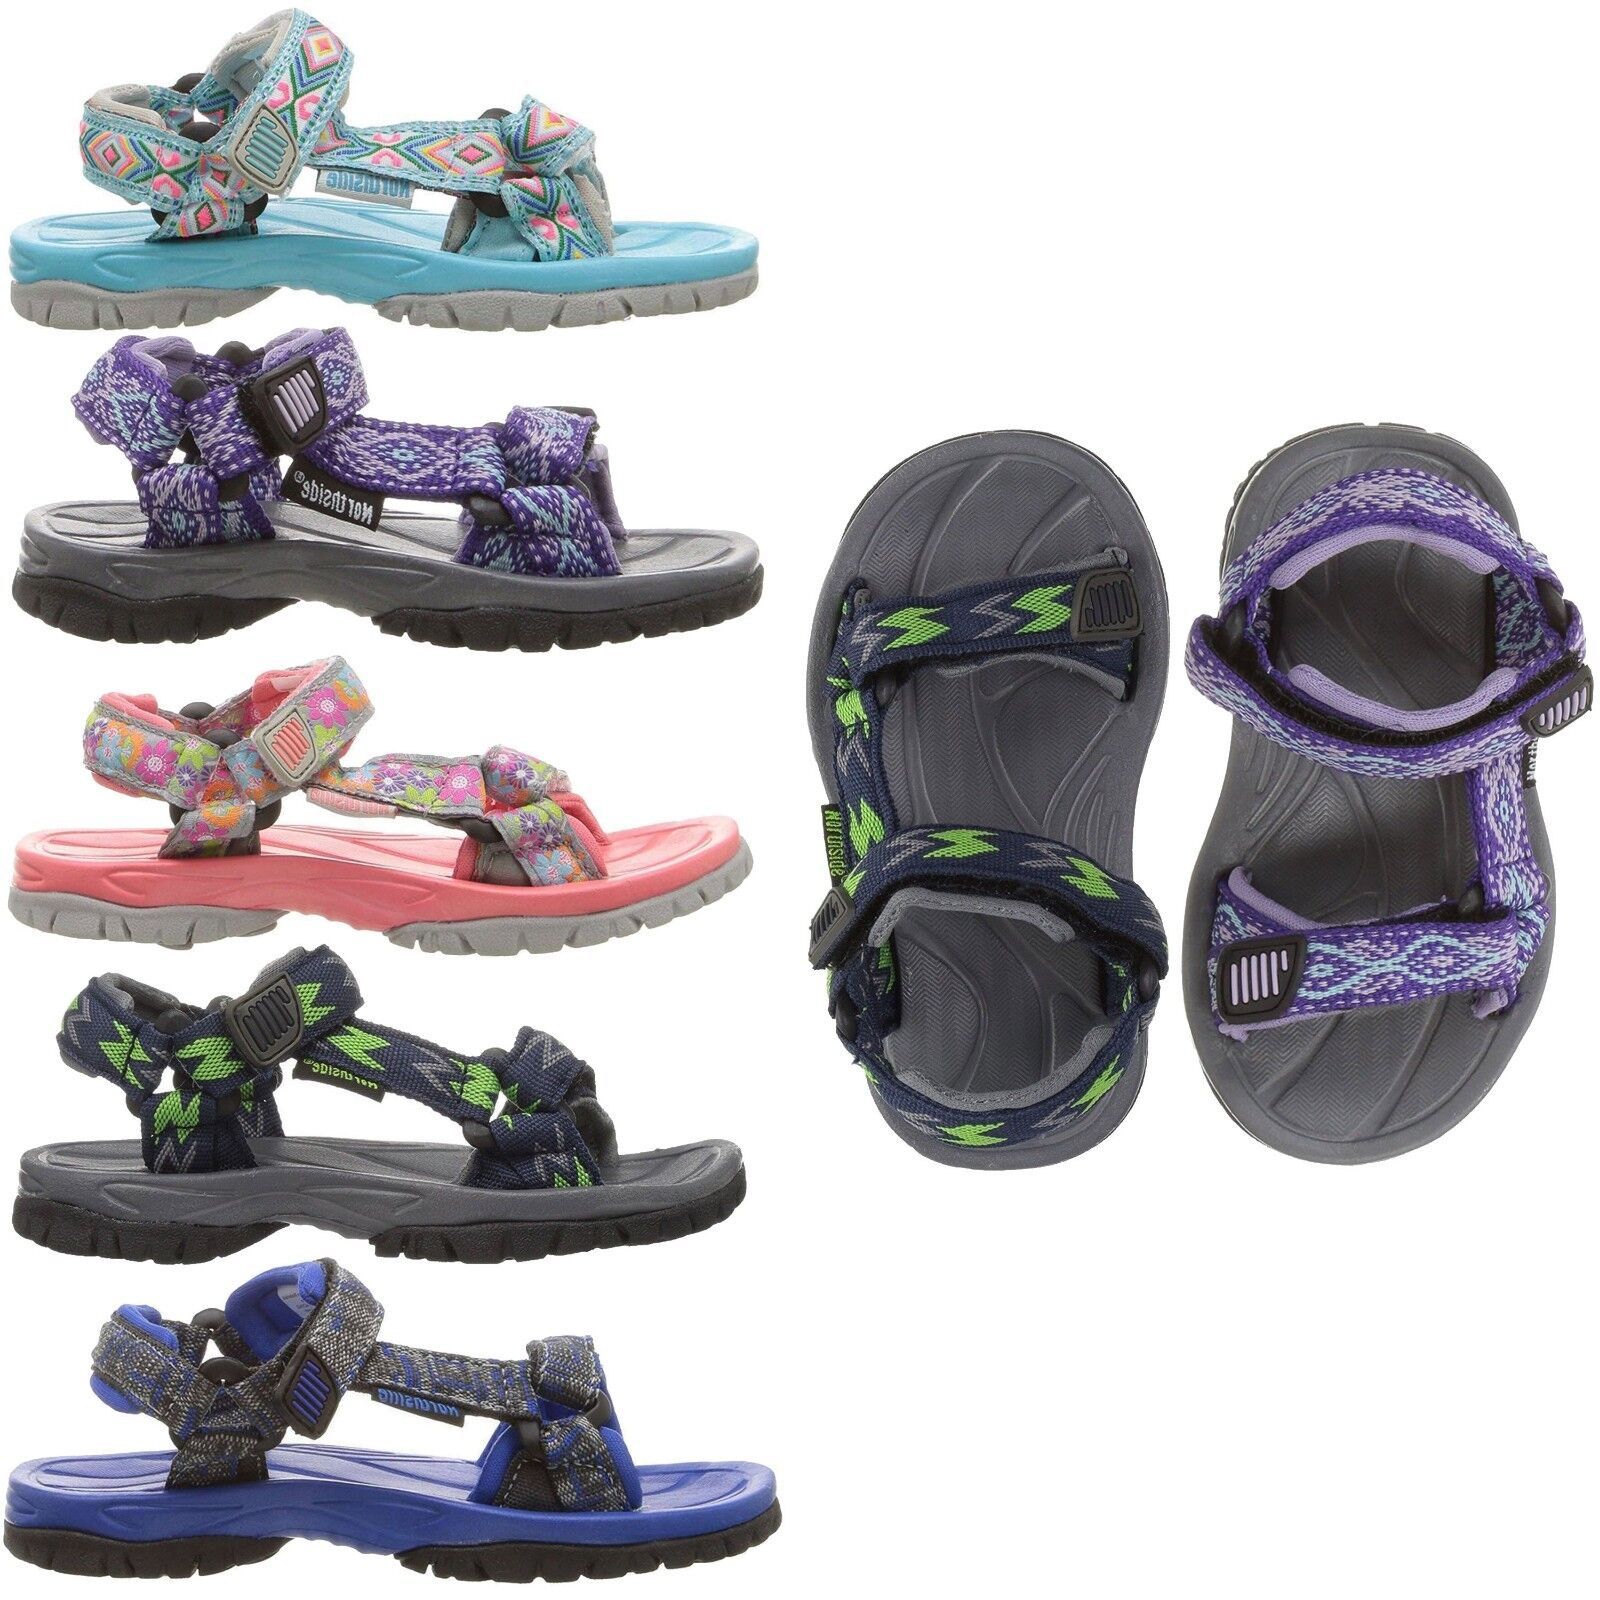 NEW Northside Kids Boys Girls Seaview Sport Sandal Open Toe